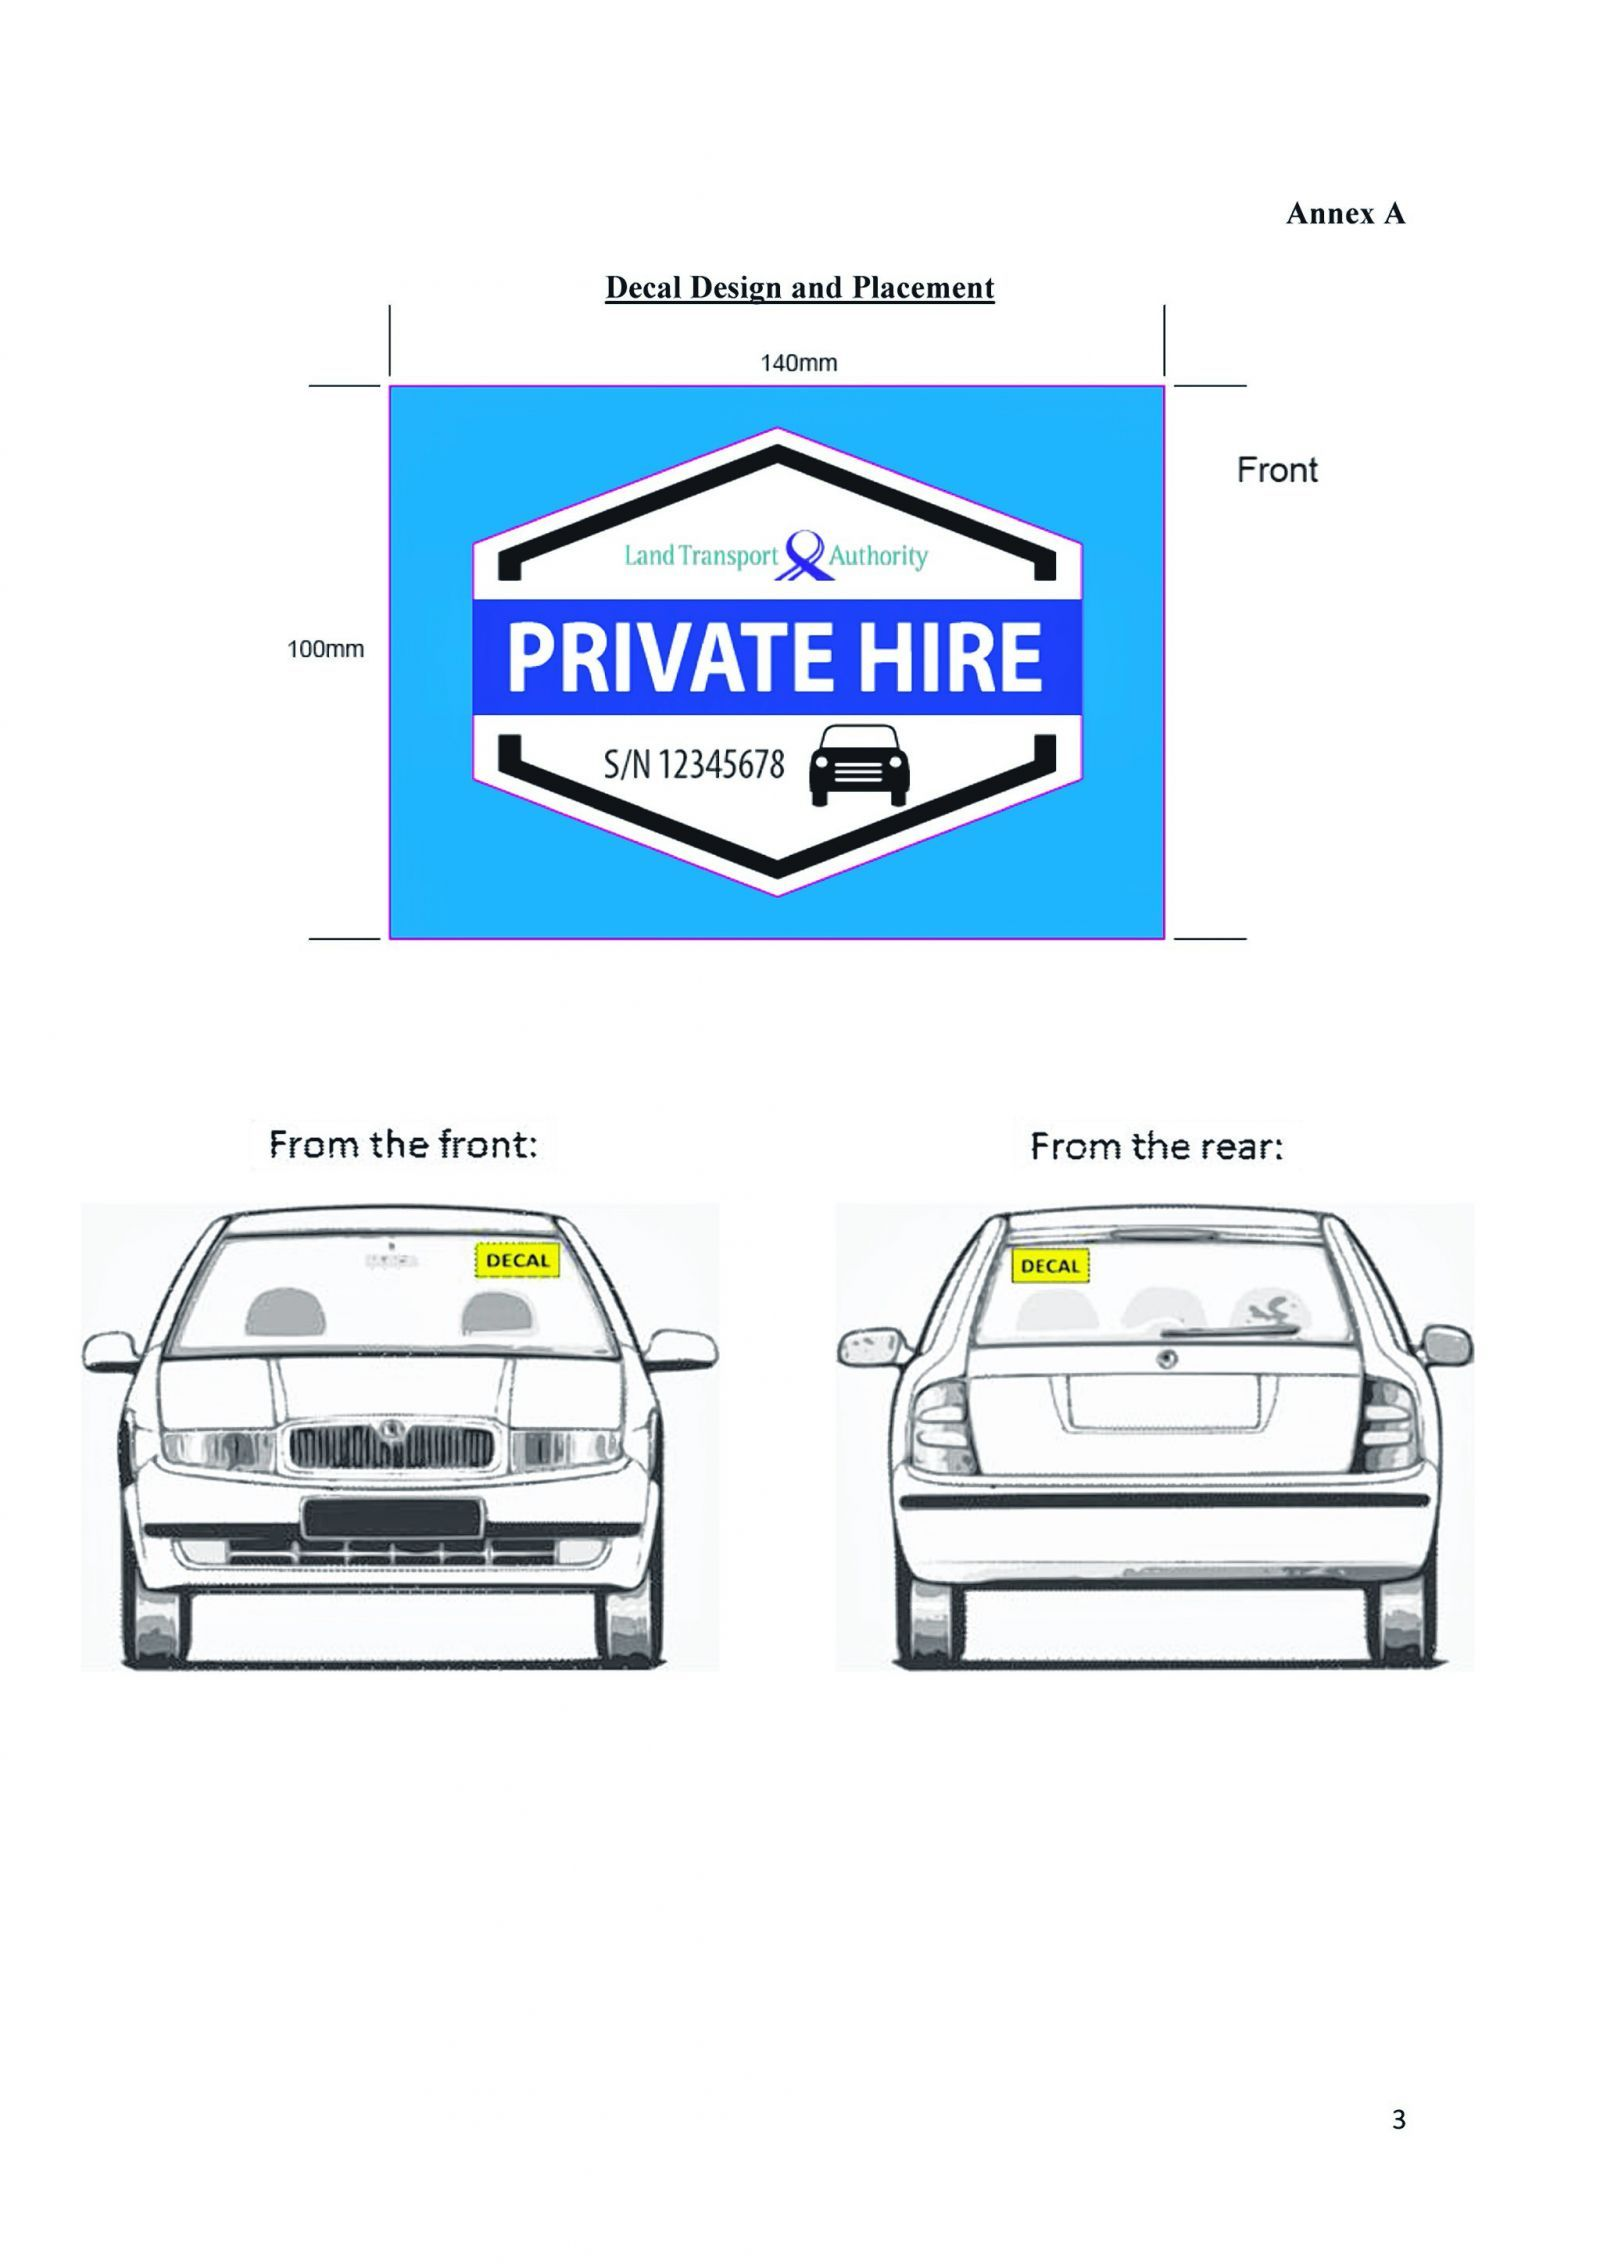 Car decal design singapore - Private Hire Cars Must Display Decals For Easier Identification From July 1